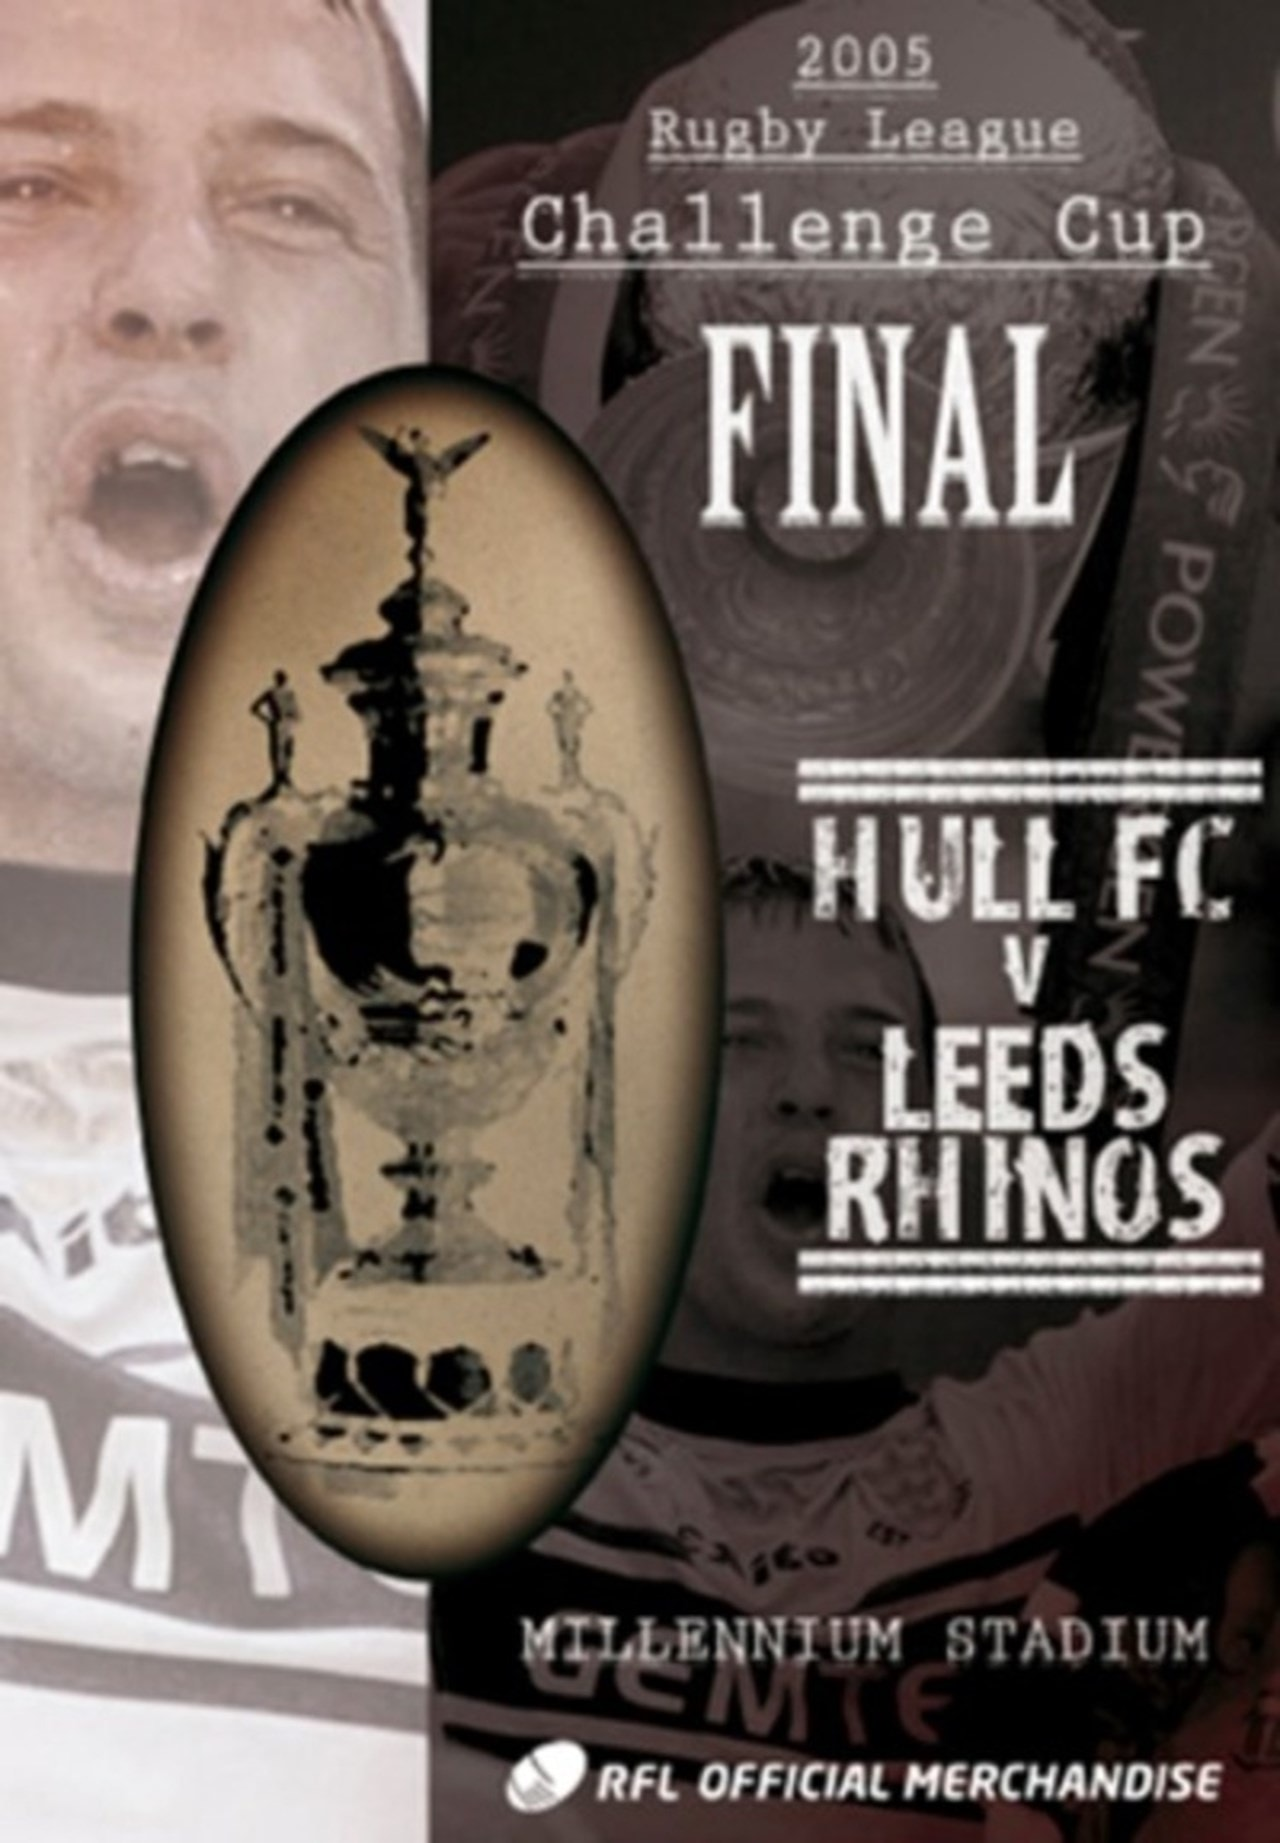 Rugby League Challenge Cup Final: 2005 - Hull FC V Leeds Rhinos - 1